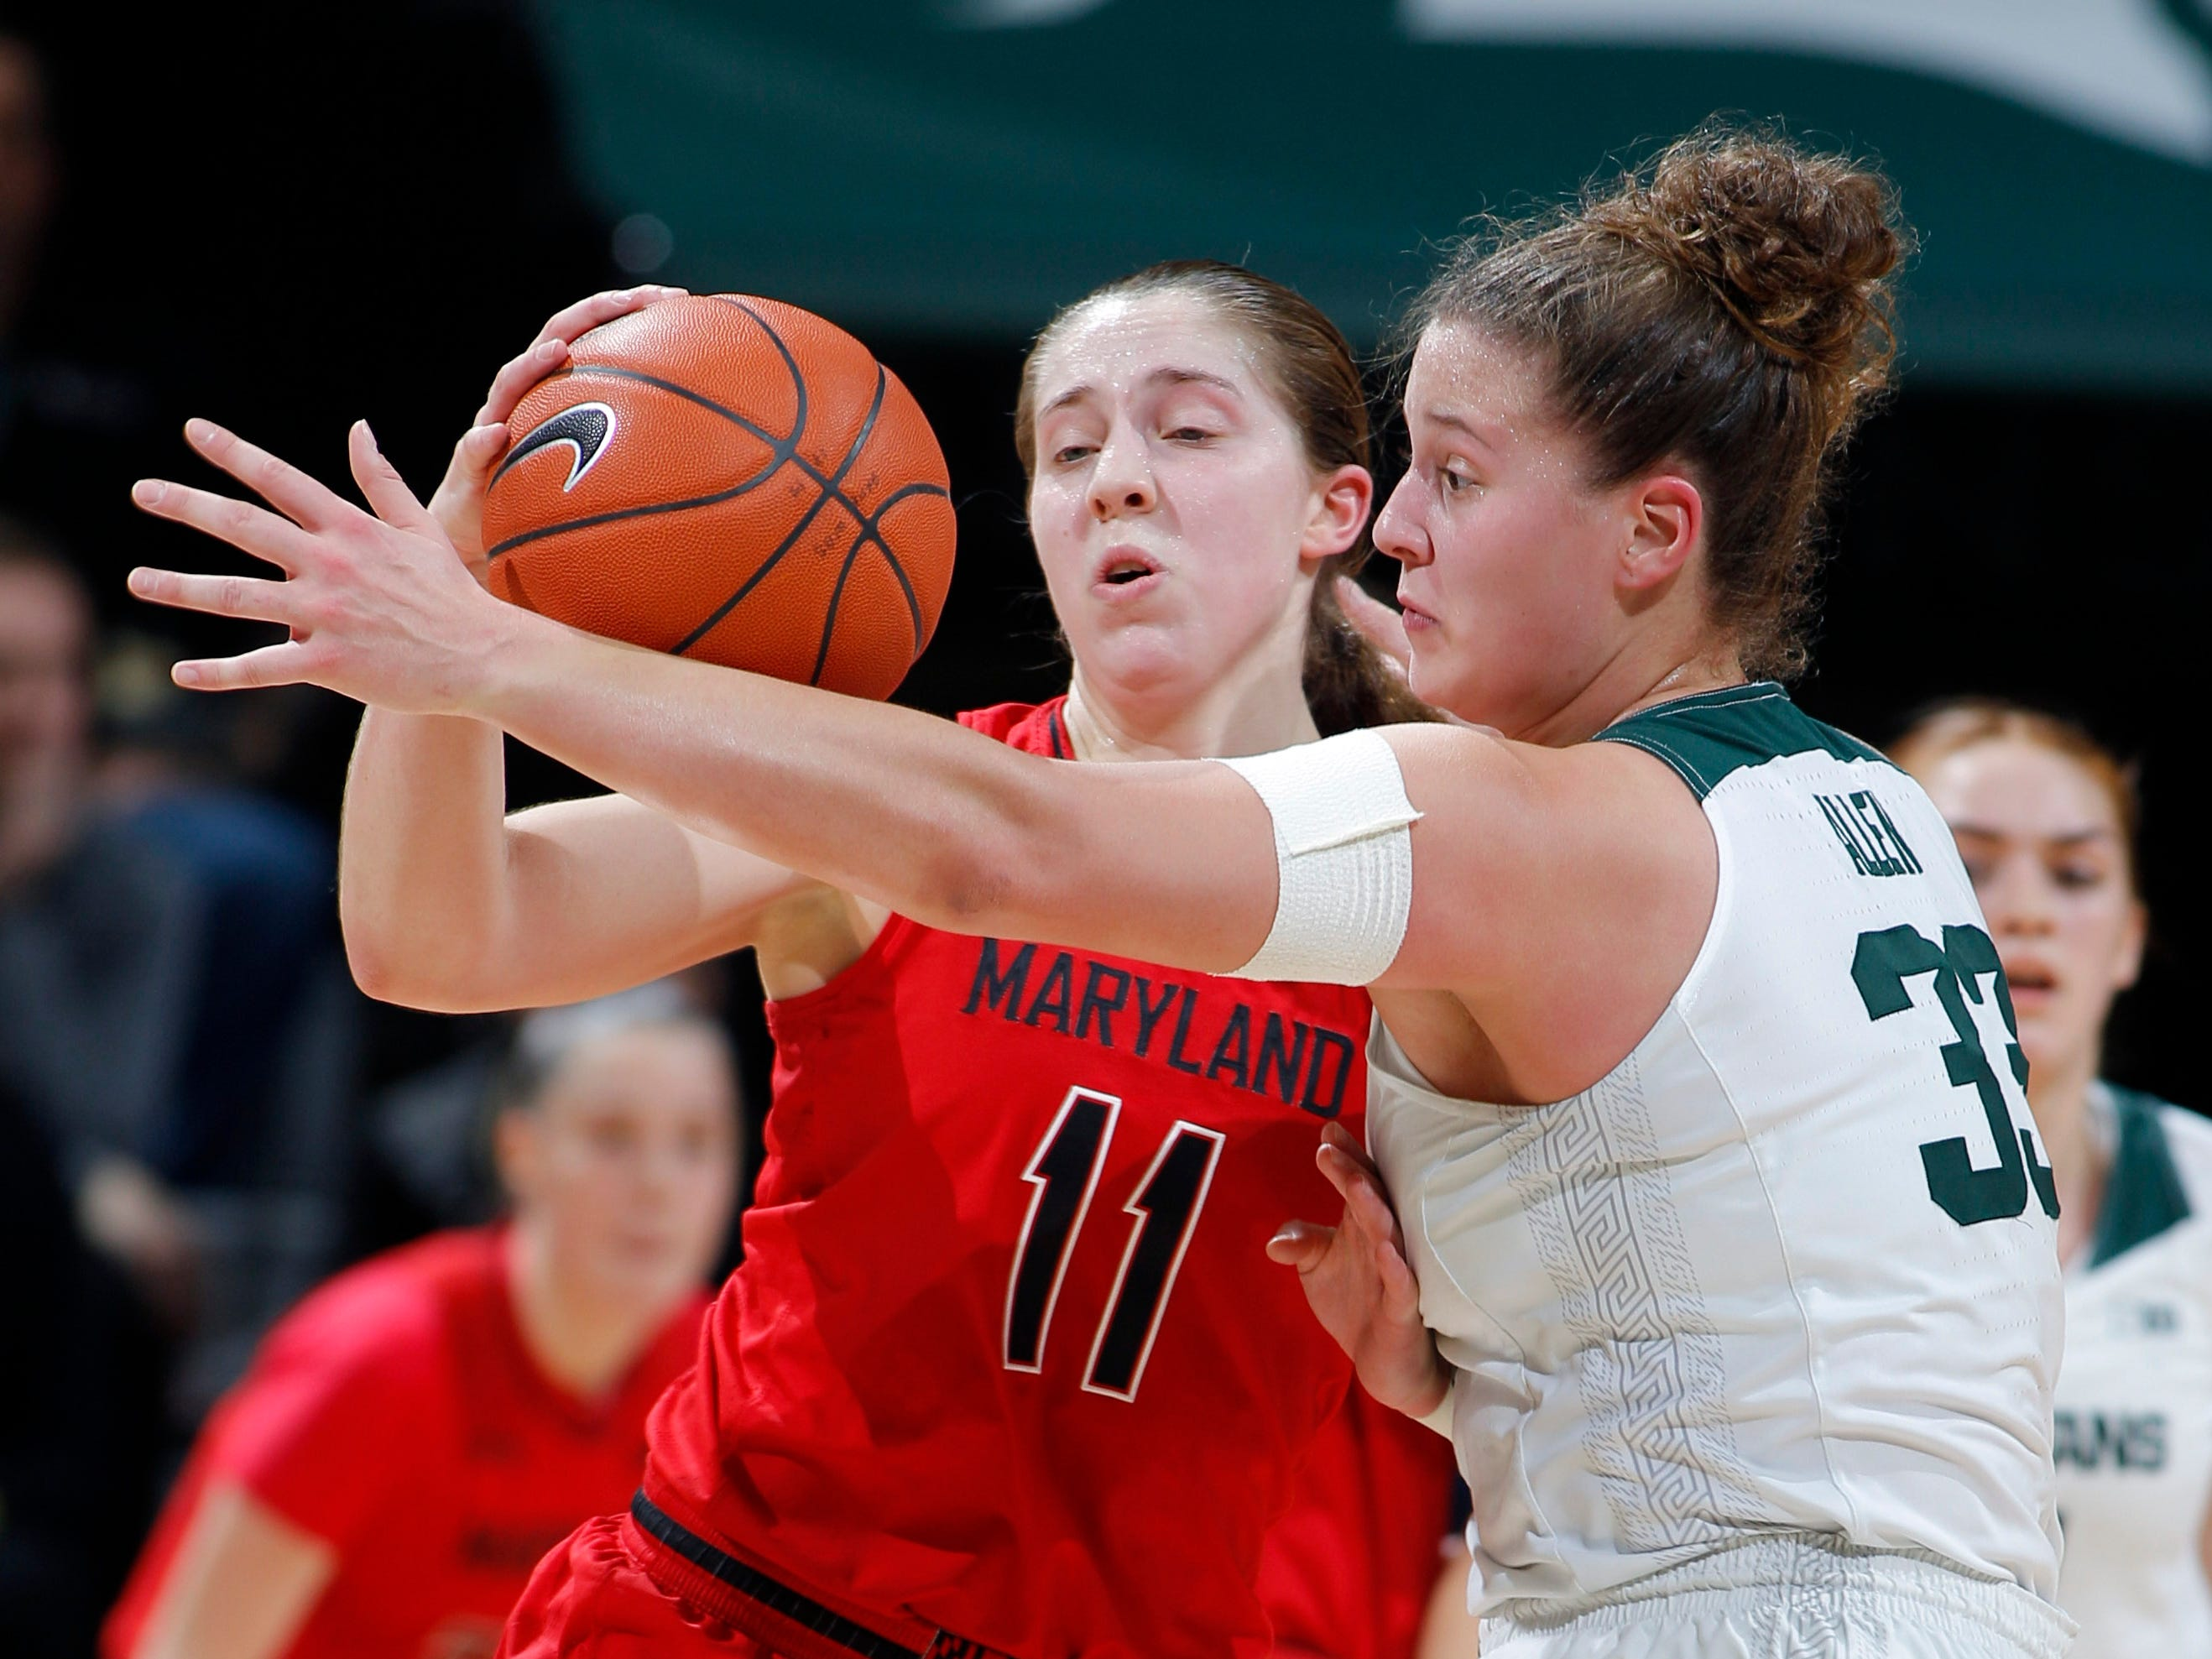 Michigan State's Jenna Allen, right, tries for a steal against Maryland's Taylor Mikesell, Thursday, Jan. 17, 2019, in East Lansing, Mich.